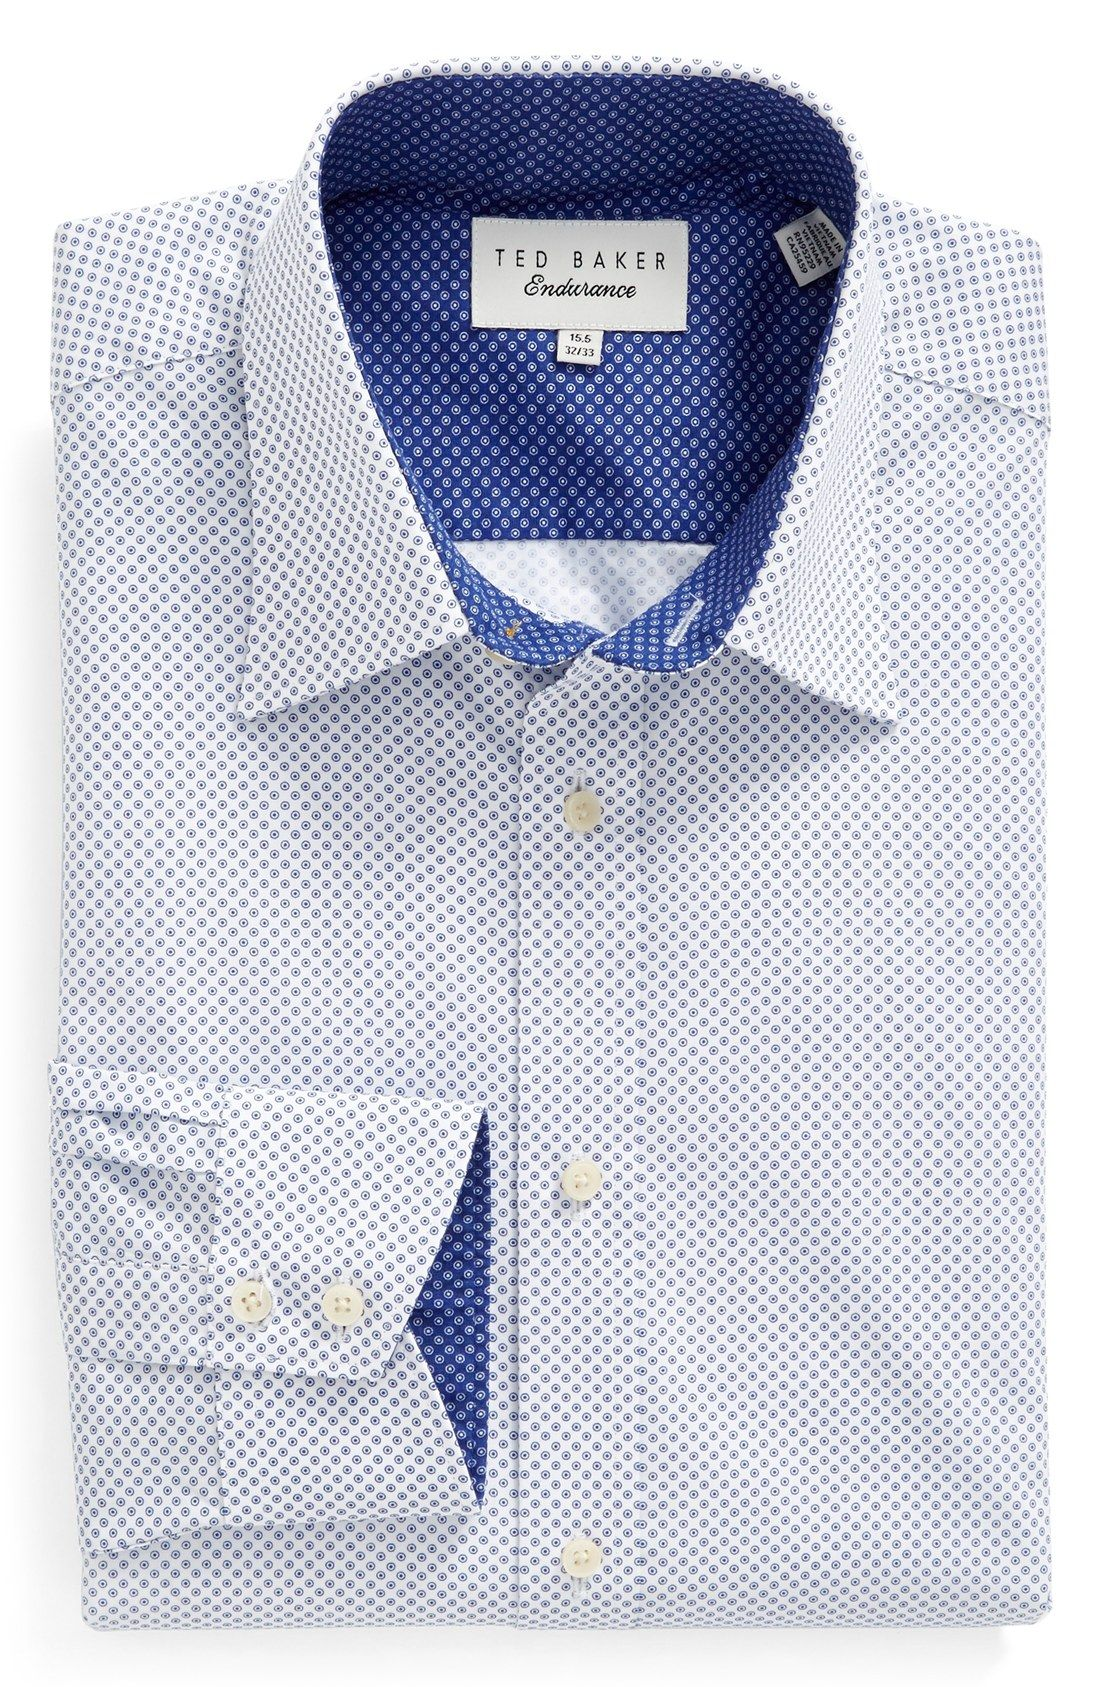 0796c5d15a43 Domani Blue Luxe Men's Black/ White Trim Button-down Dress Shirt (Medium)  (polyester) | Products | Black, white man, Button down dress, White trim